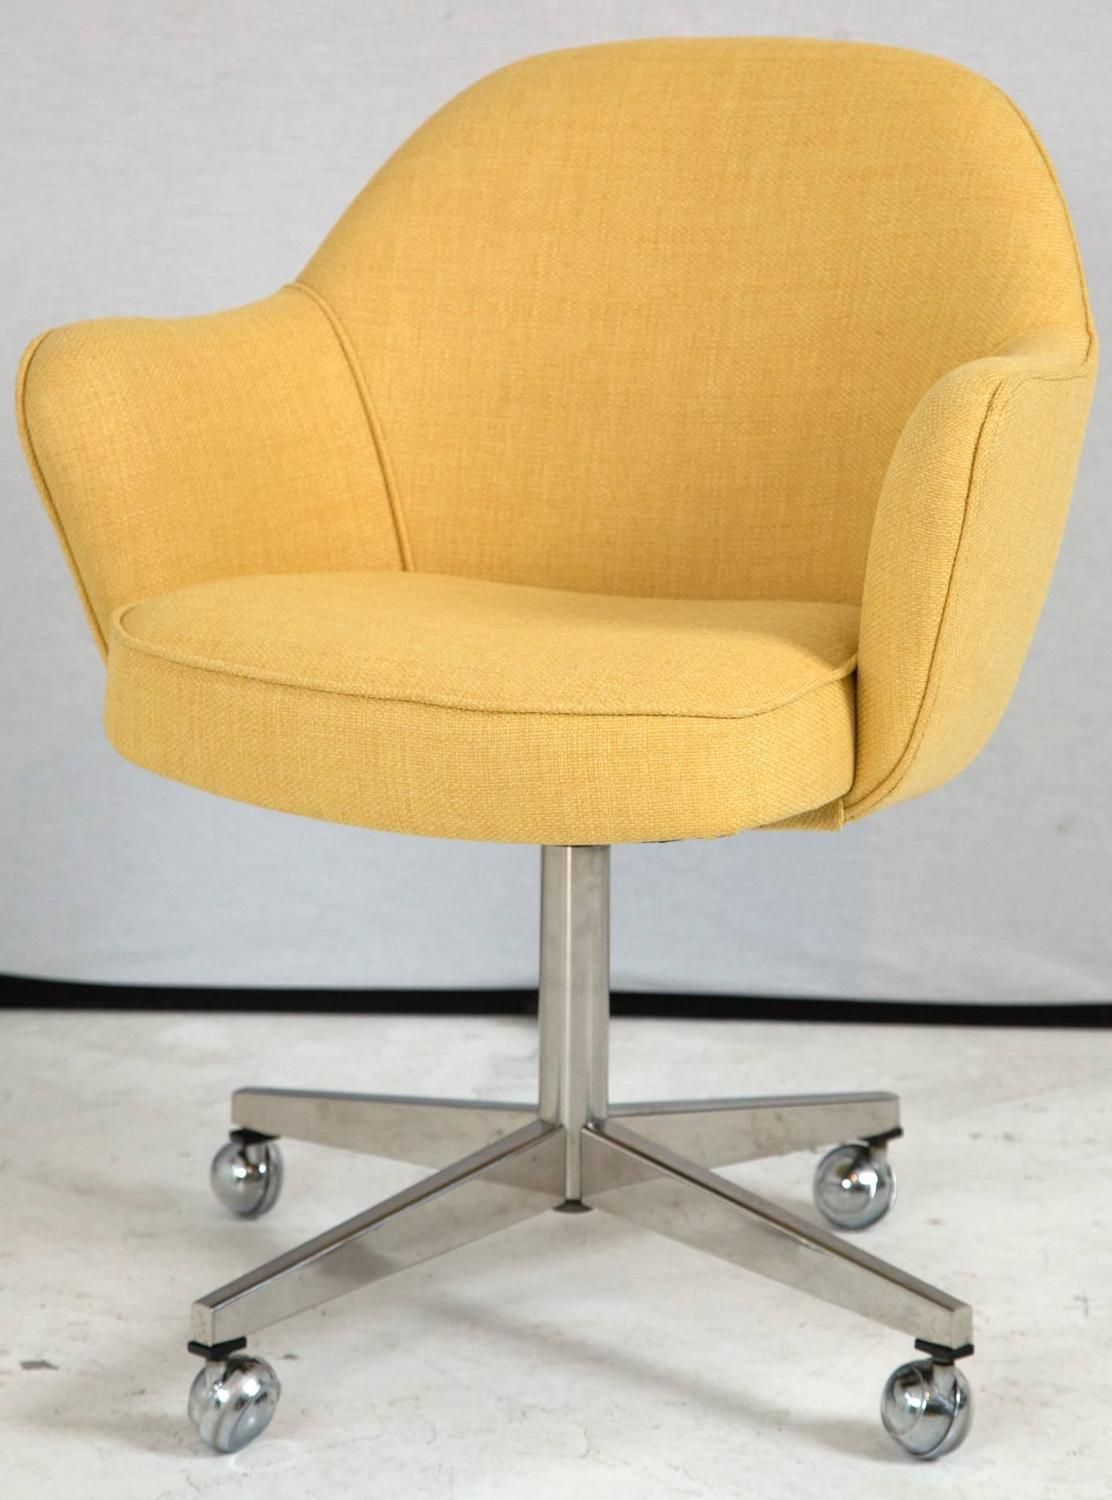 Knoll Desk Chair In Yellow Microfiber 3 Sillas De Escritorio